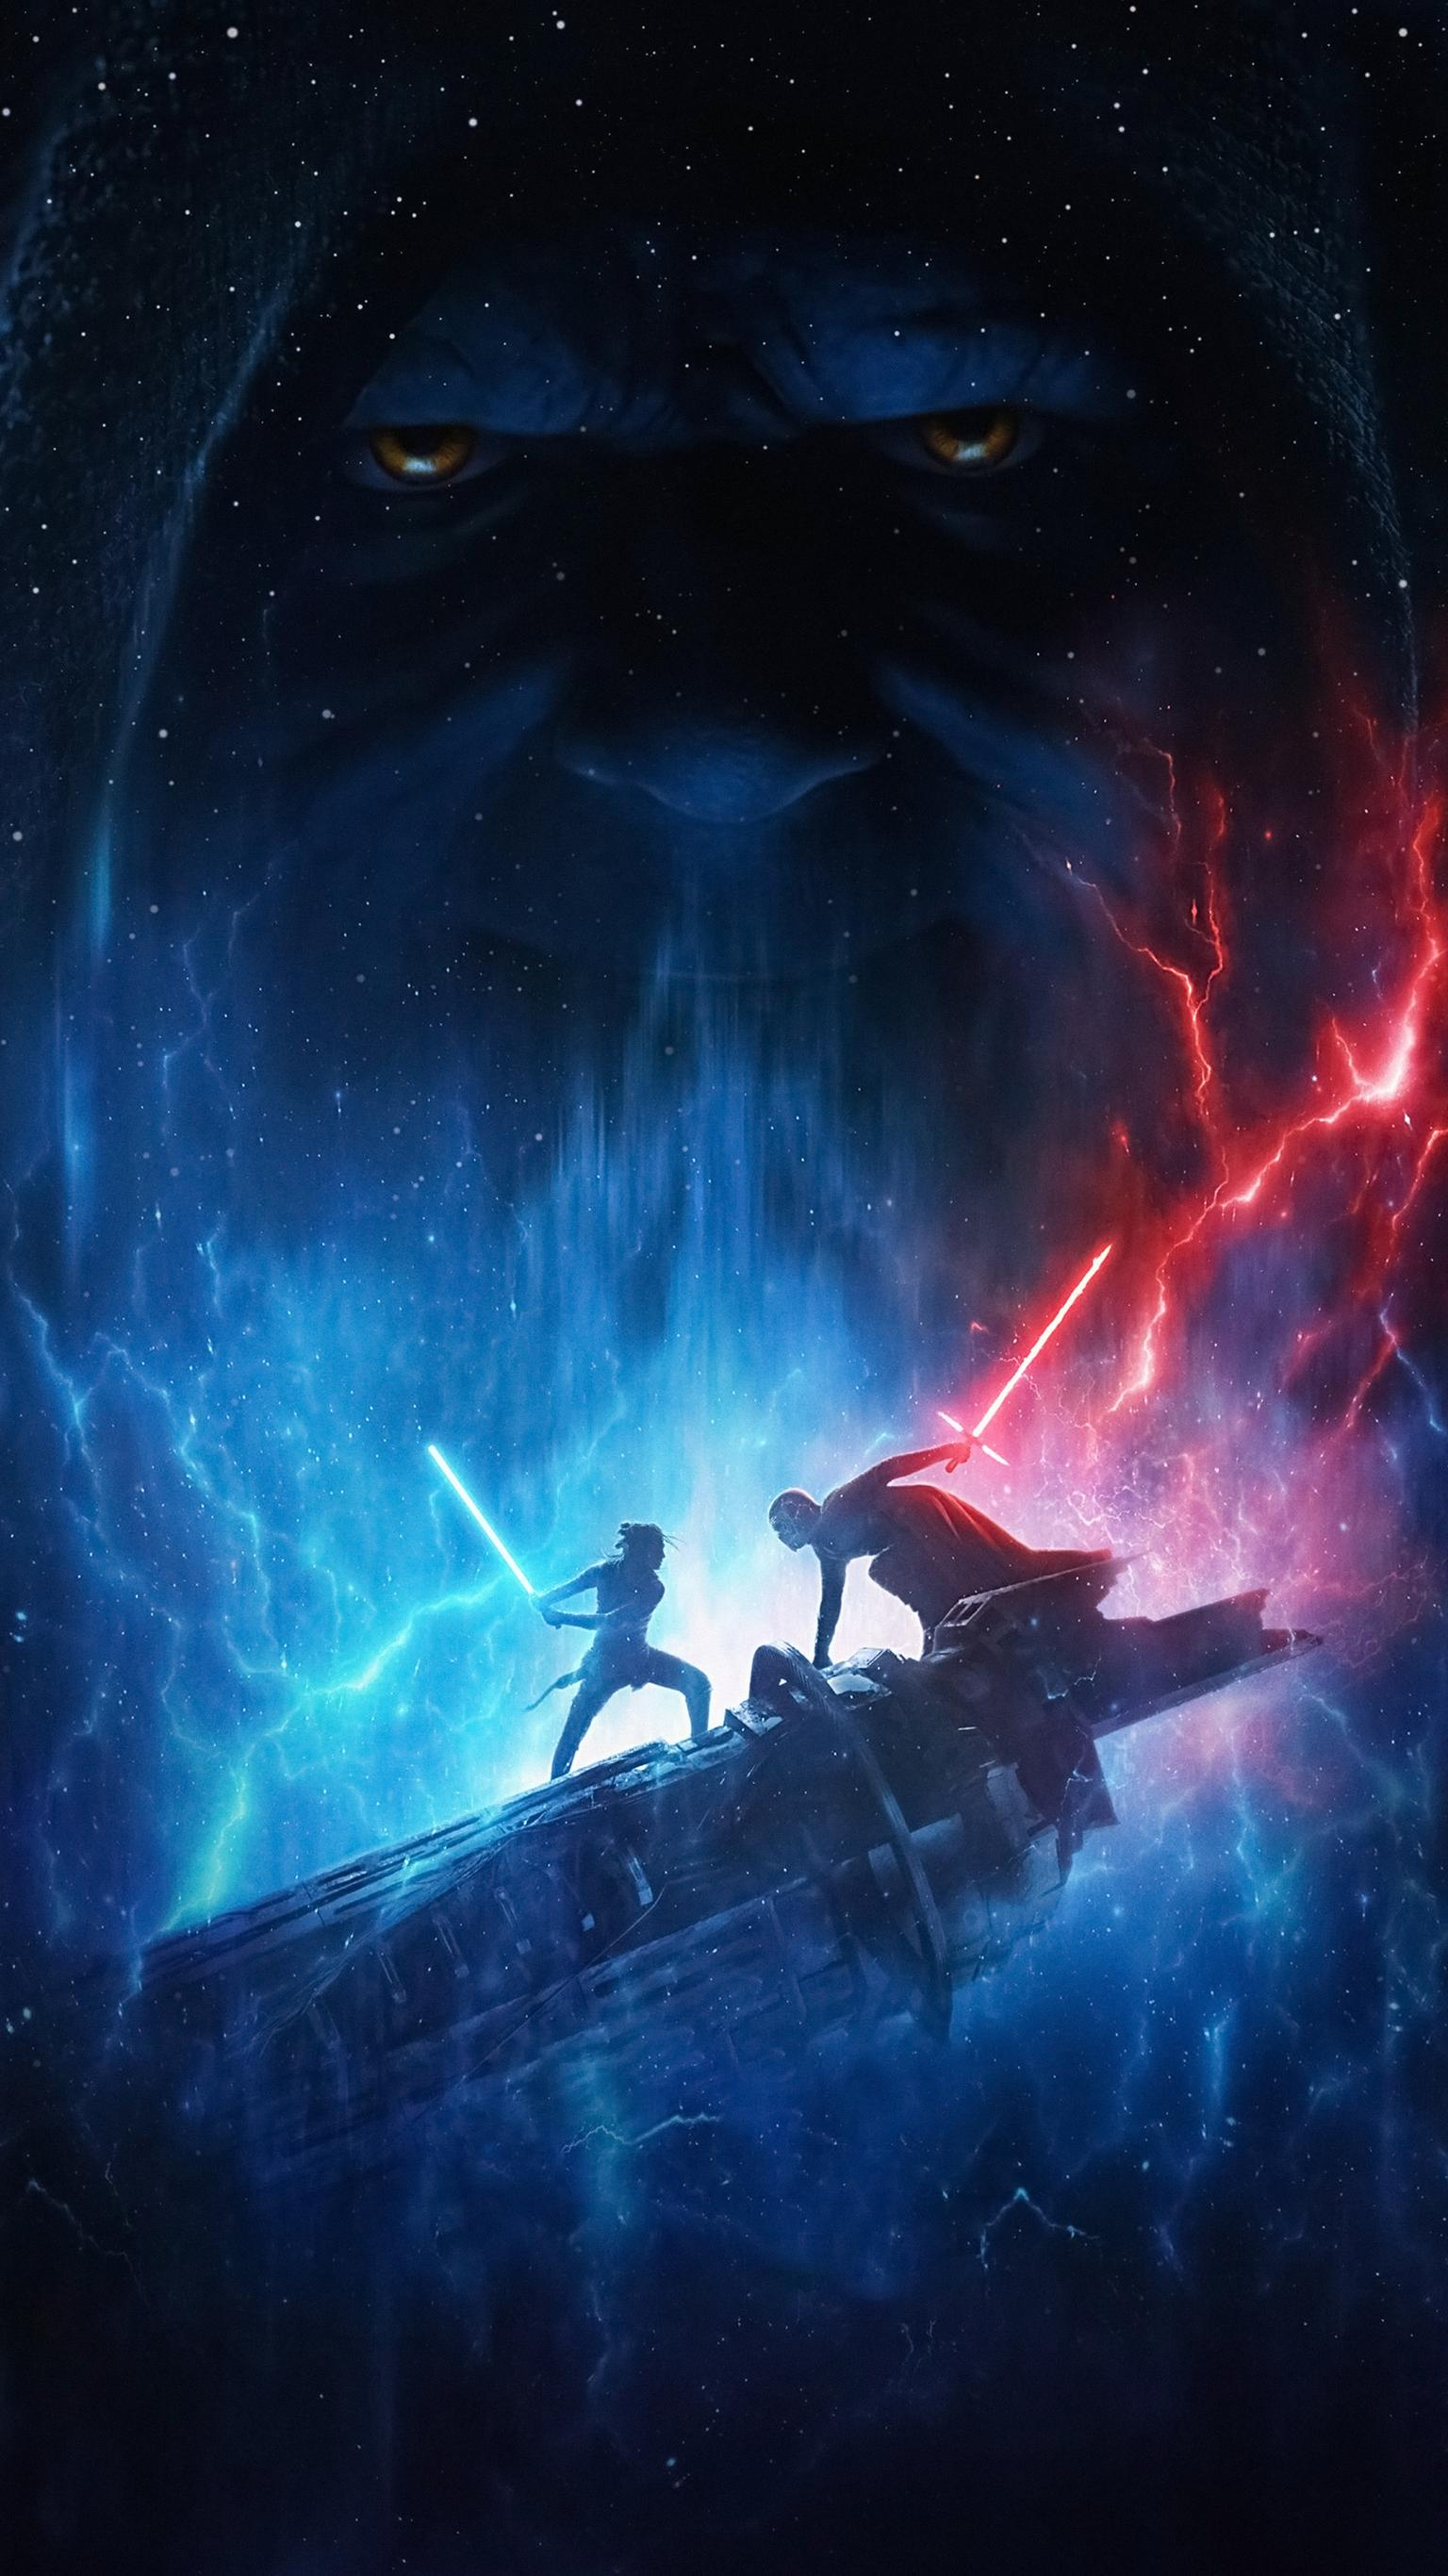 Wallpaper Star Wars 4k artsticos e do Baby Yoda